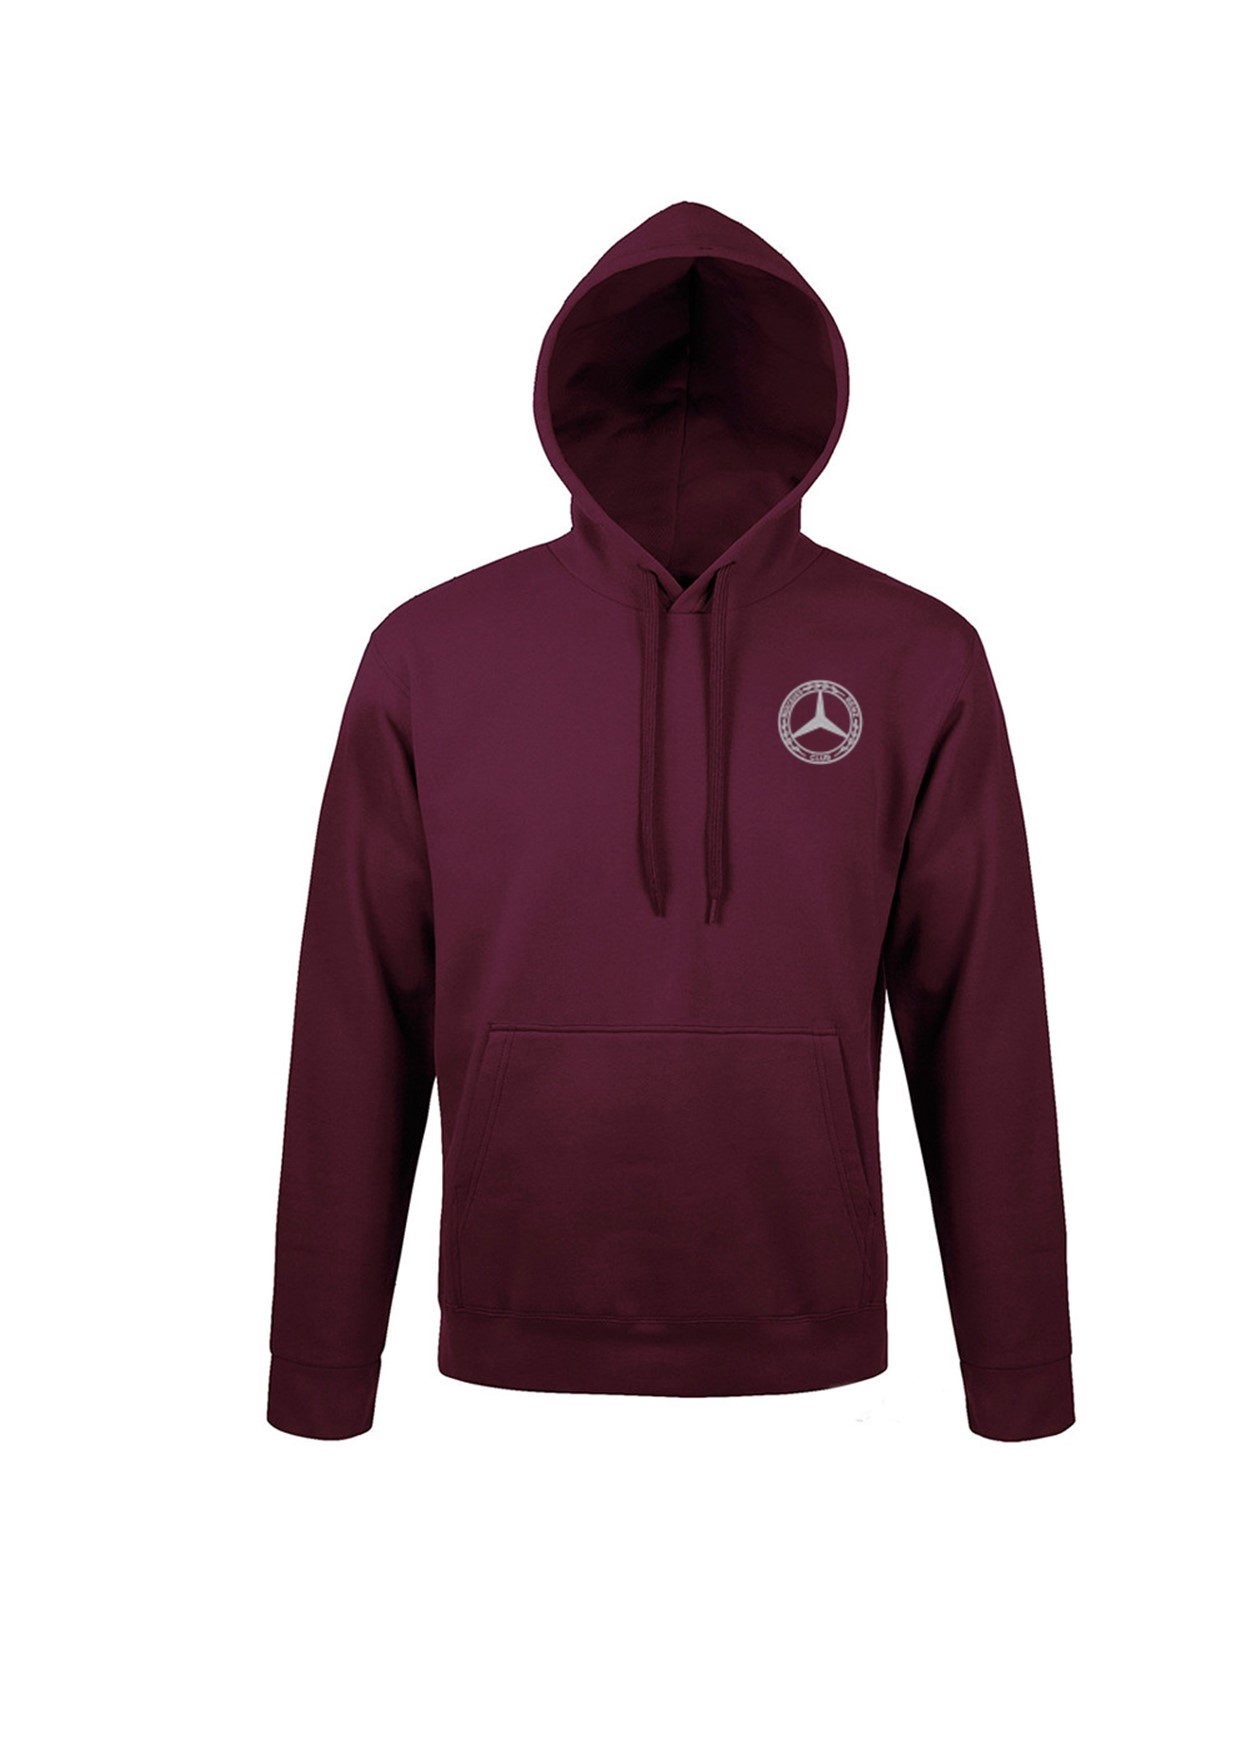 Mercedes-Benz Club Unisex Hooded Sweatshirt Burgundy